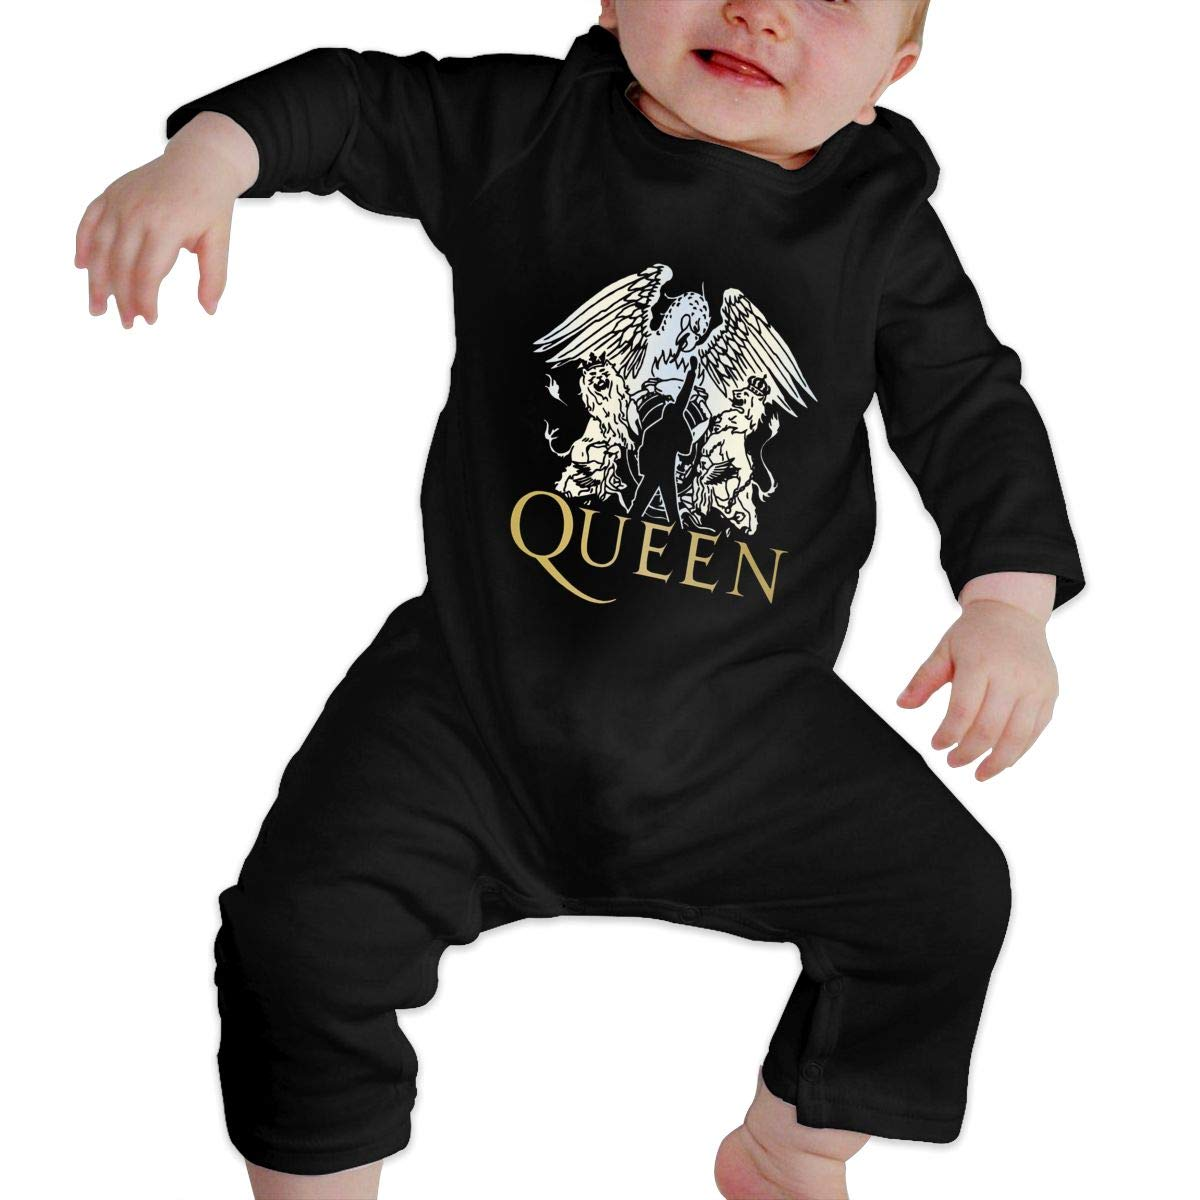 Fional Infant Long Sleeve Romper 71IZBLEy20L Newborn Babys 0-24M Organic Cotton Jumpsuit Outfit